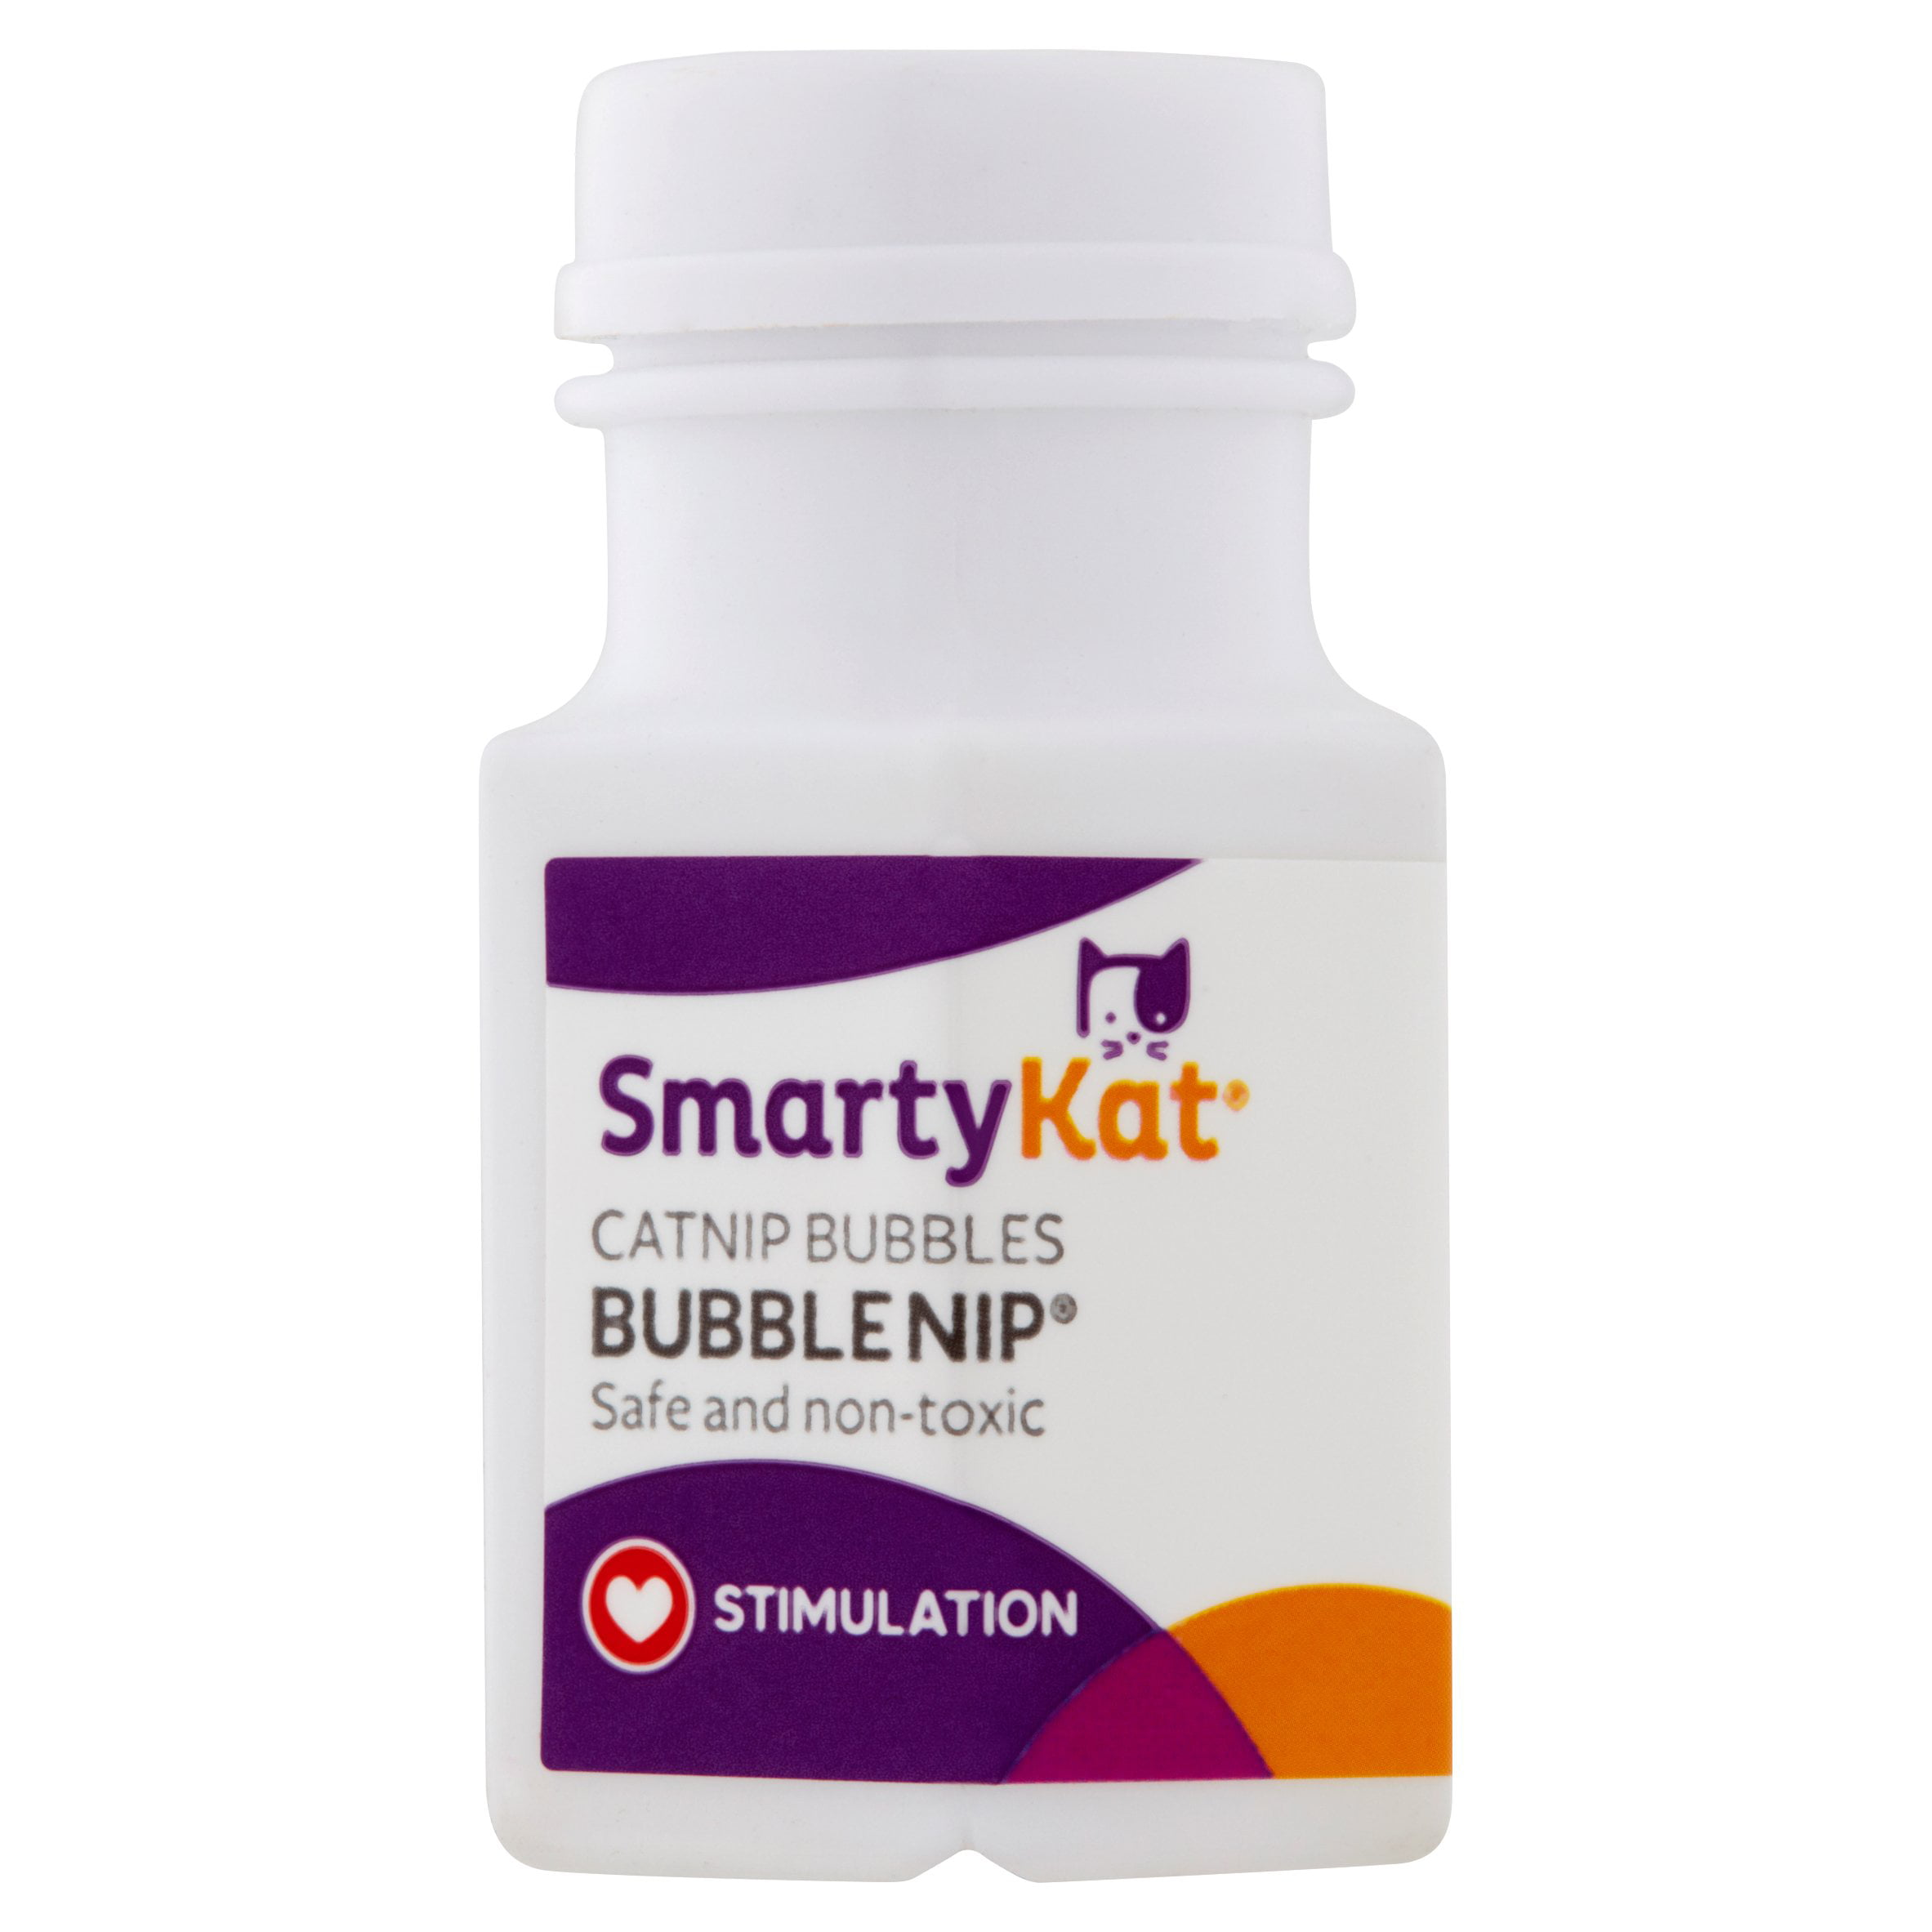 SmartyKat Bubble Nip 0.6oz Catnip Bubbles, Trial Size by Worldwise